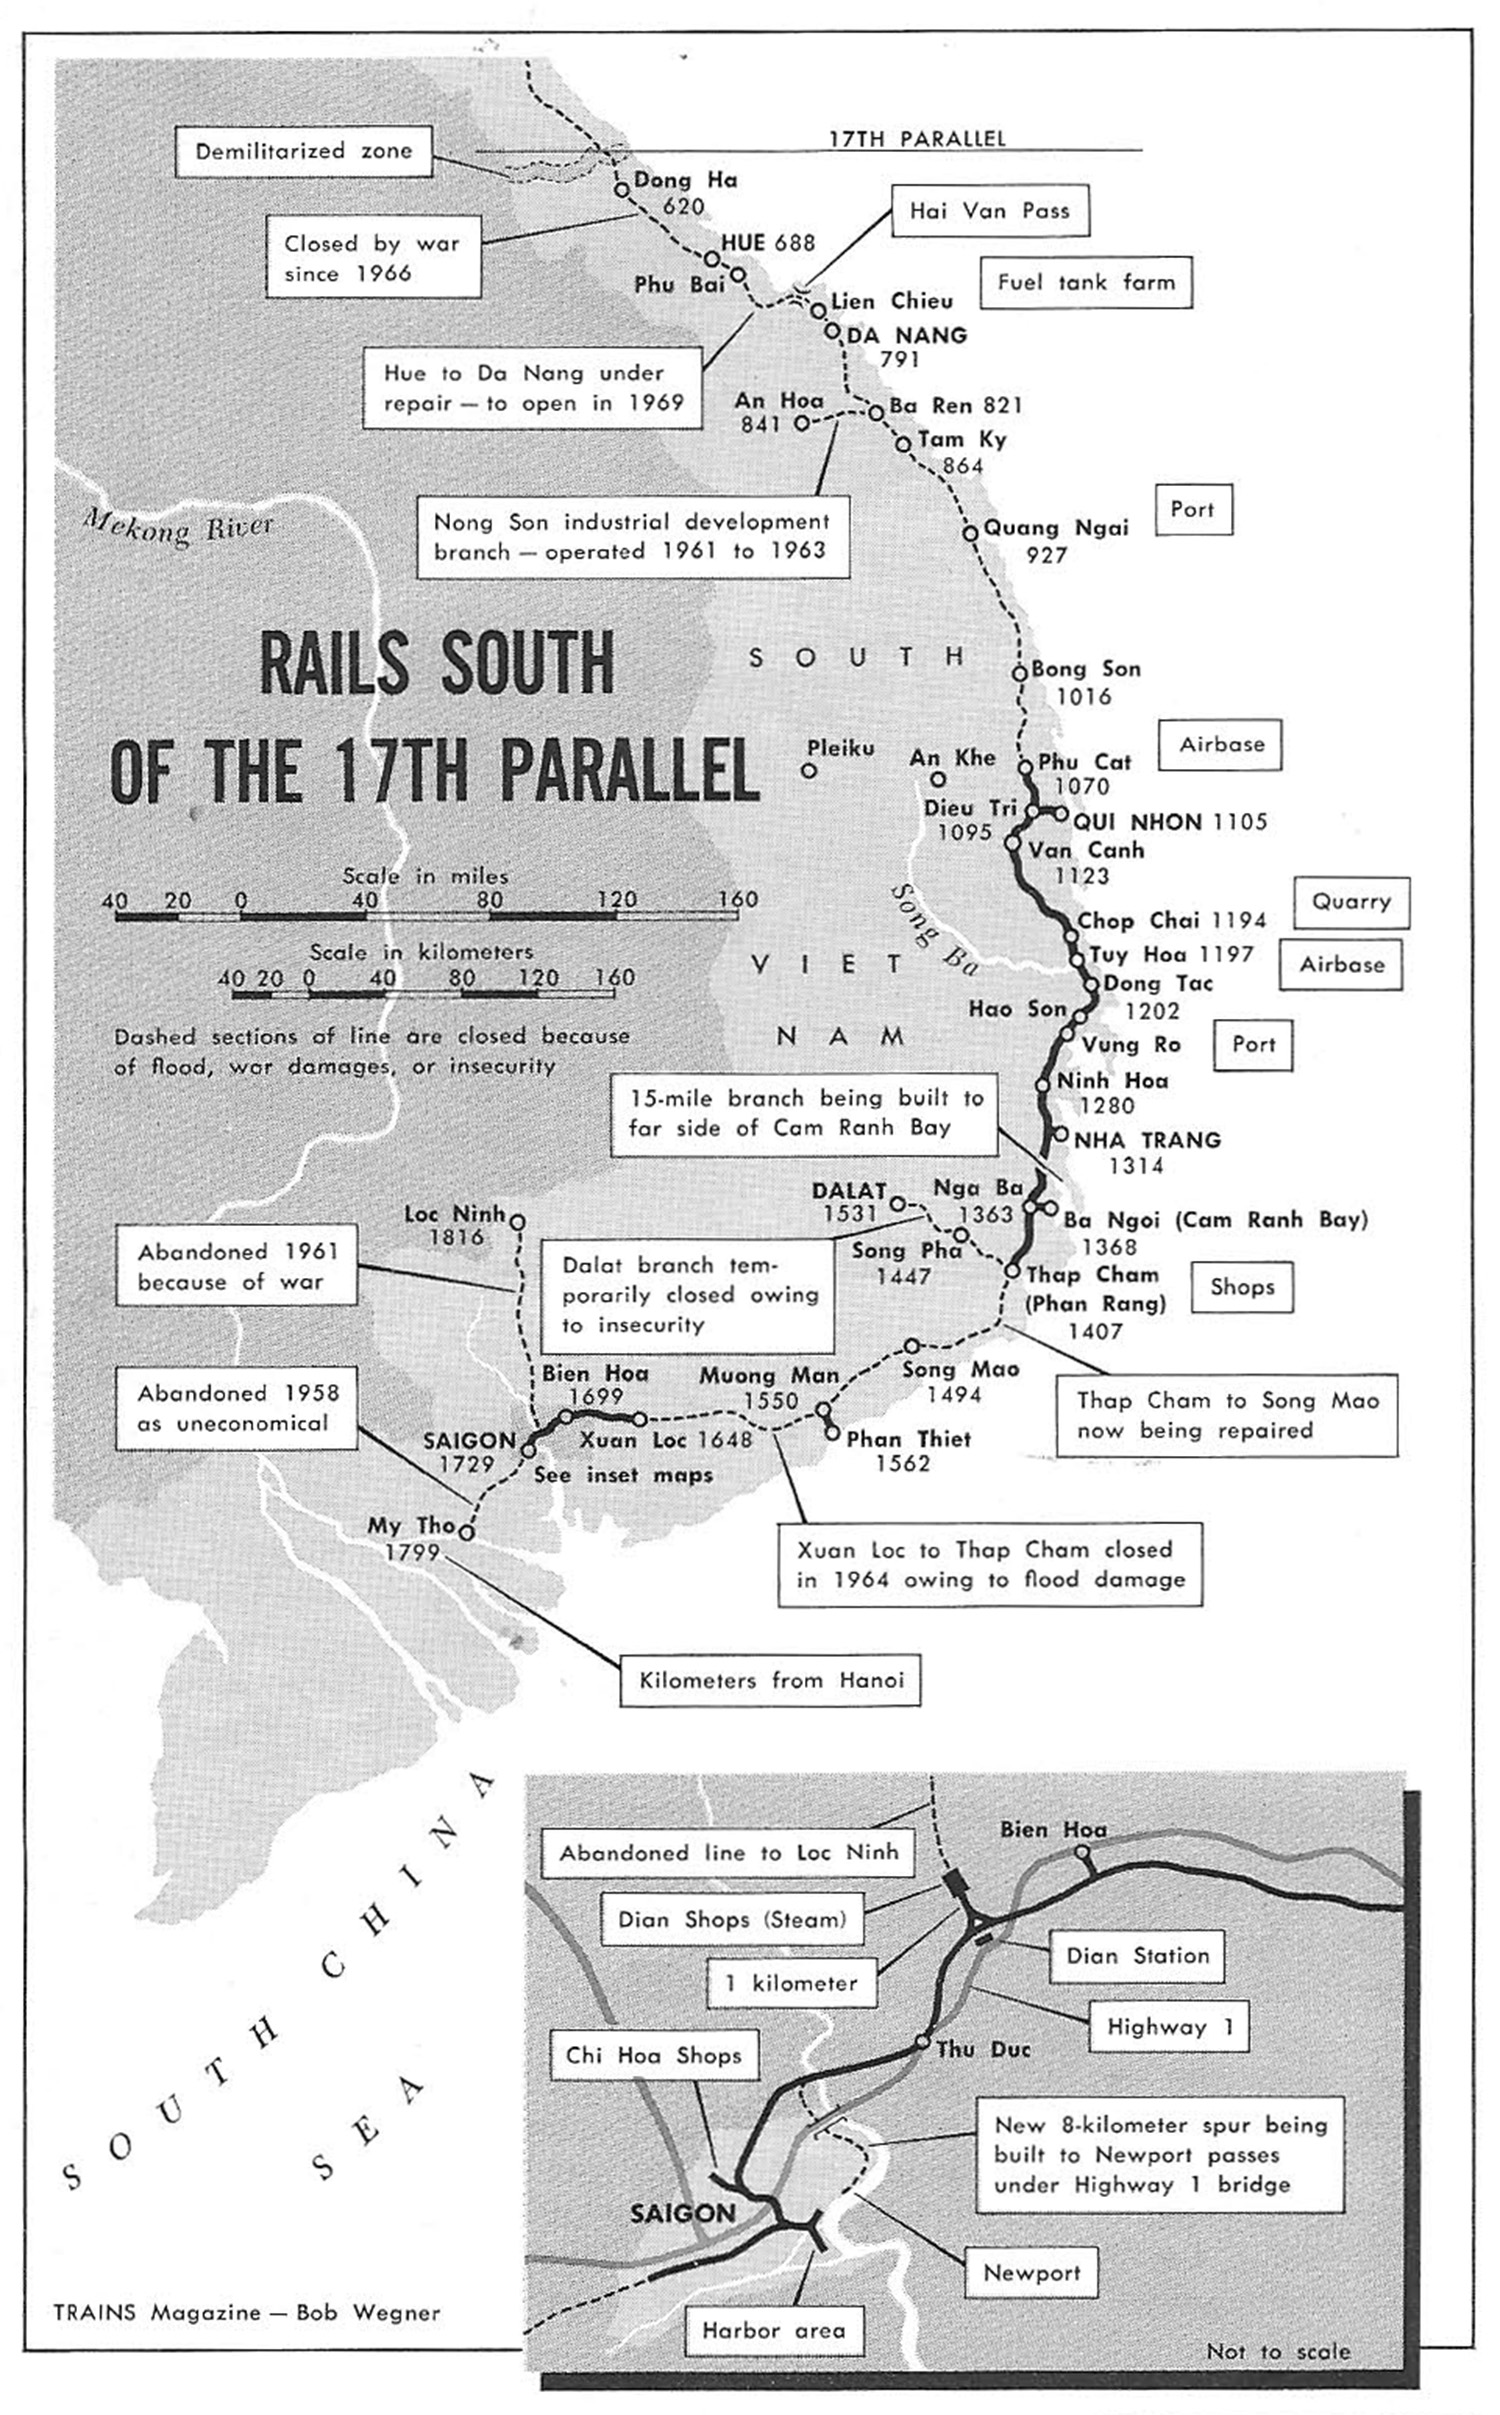 hight resolution of by the end of 1964 more damage had been inflicted on the south vietnamese railway system in a two month period that in 15 years of world war ii and the